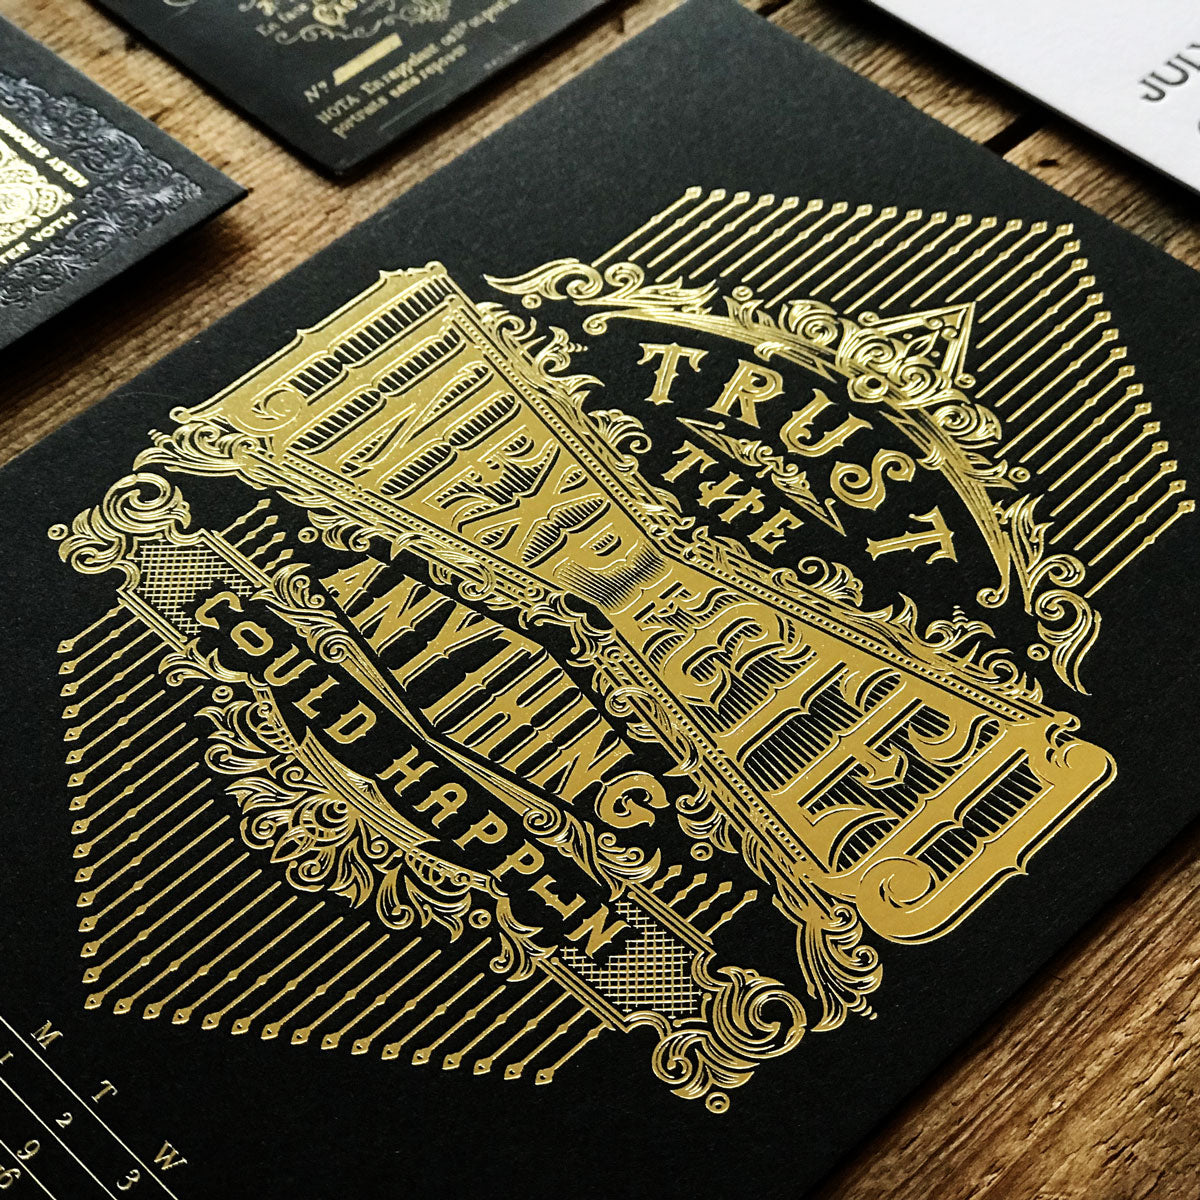 2019 letterpress calendar Artist's proof 07 - hot foil - MR CUP